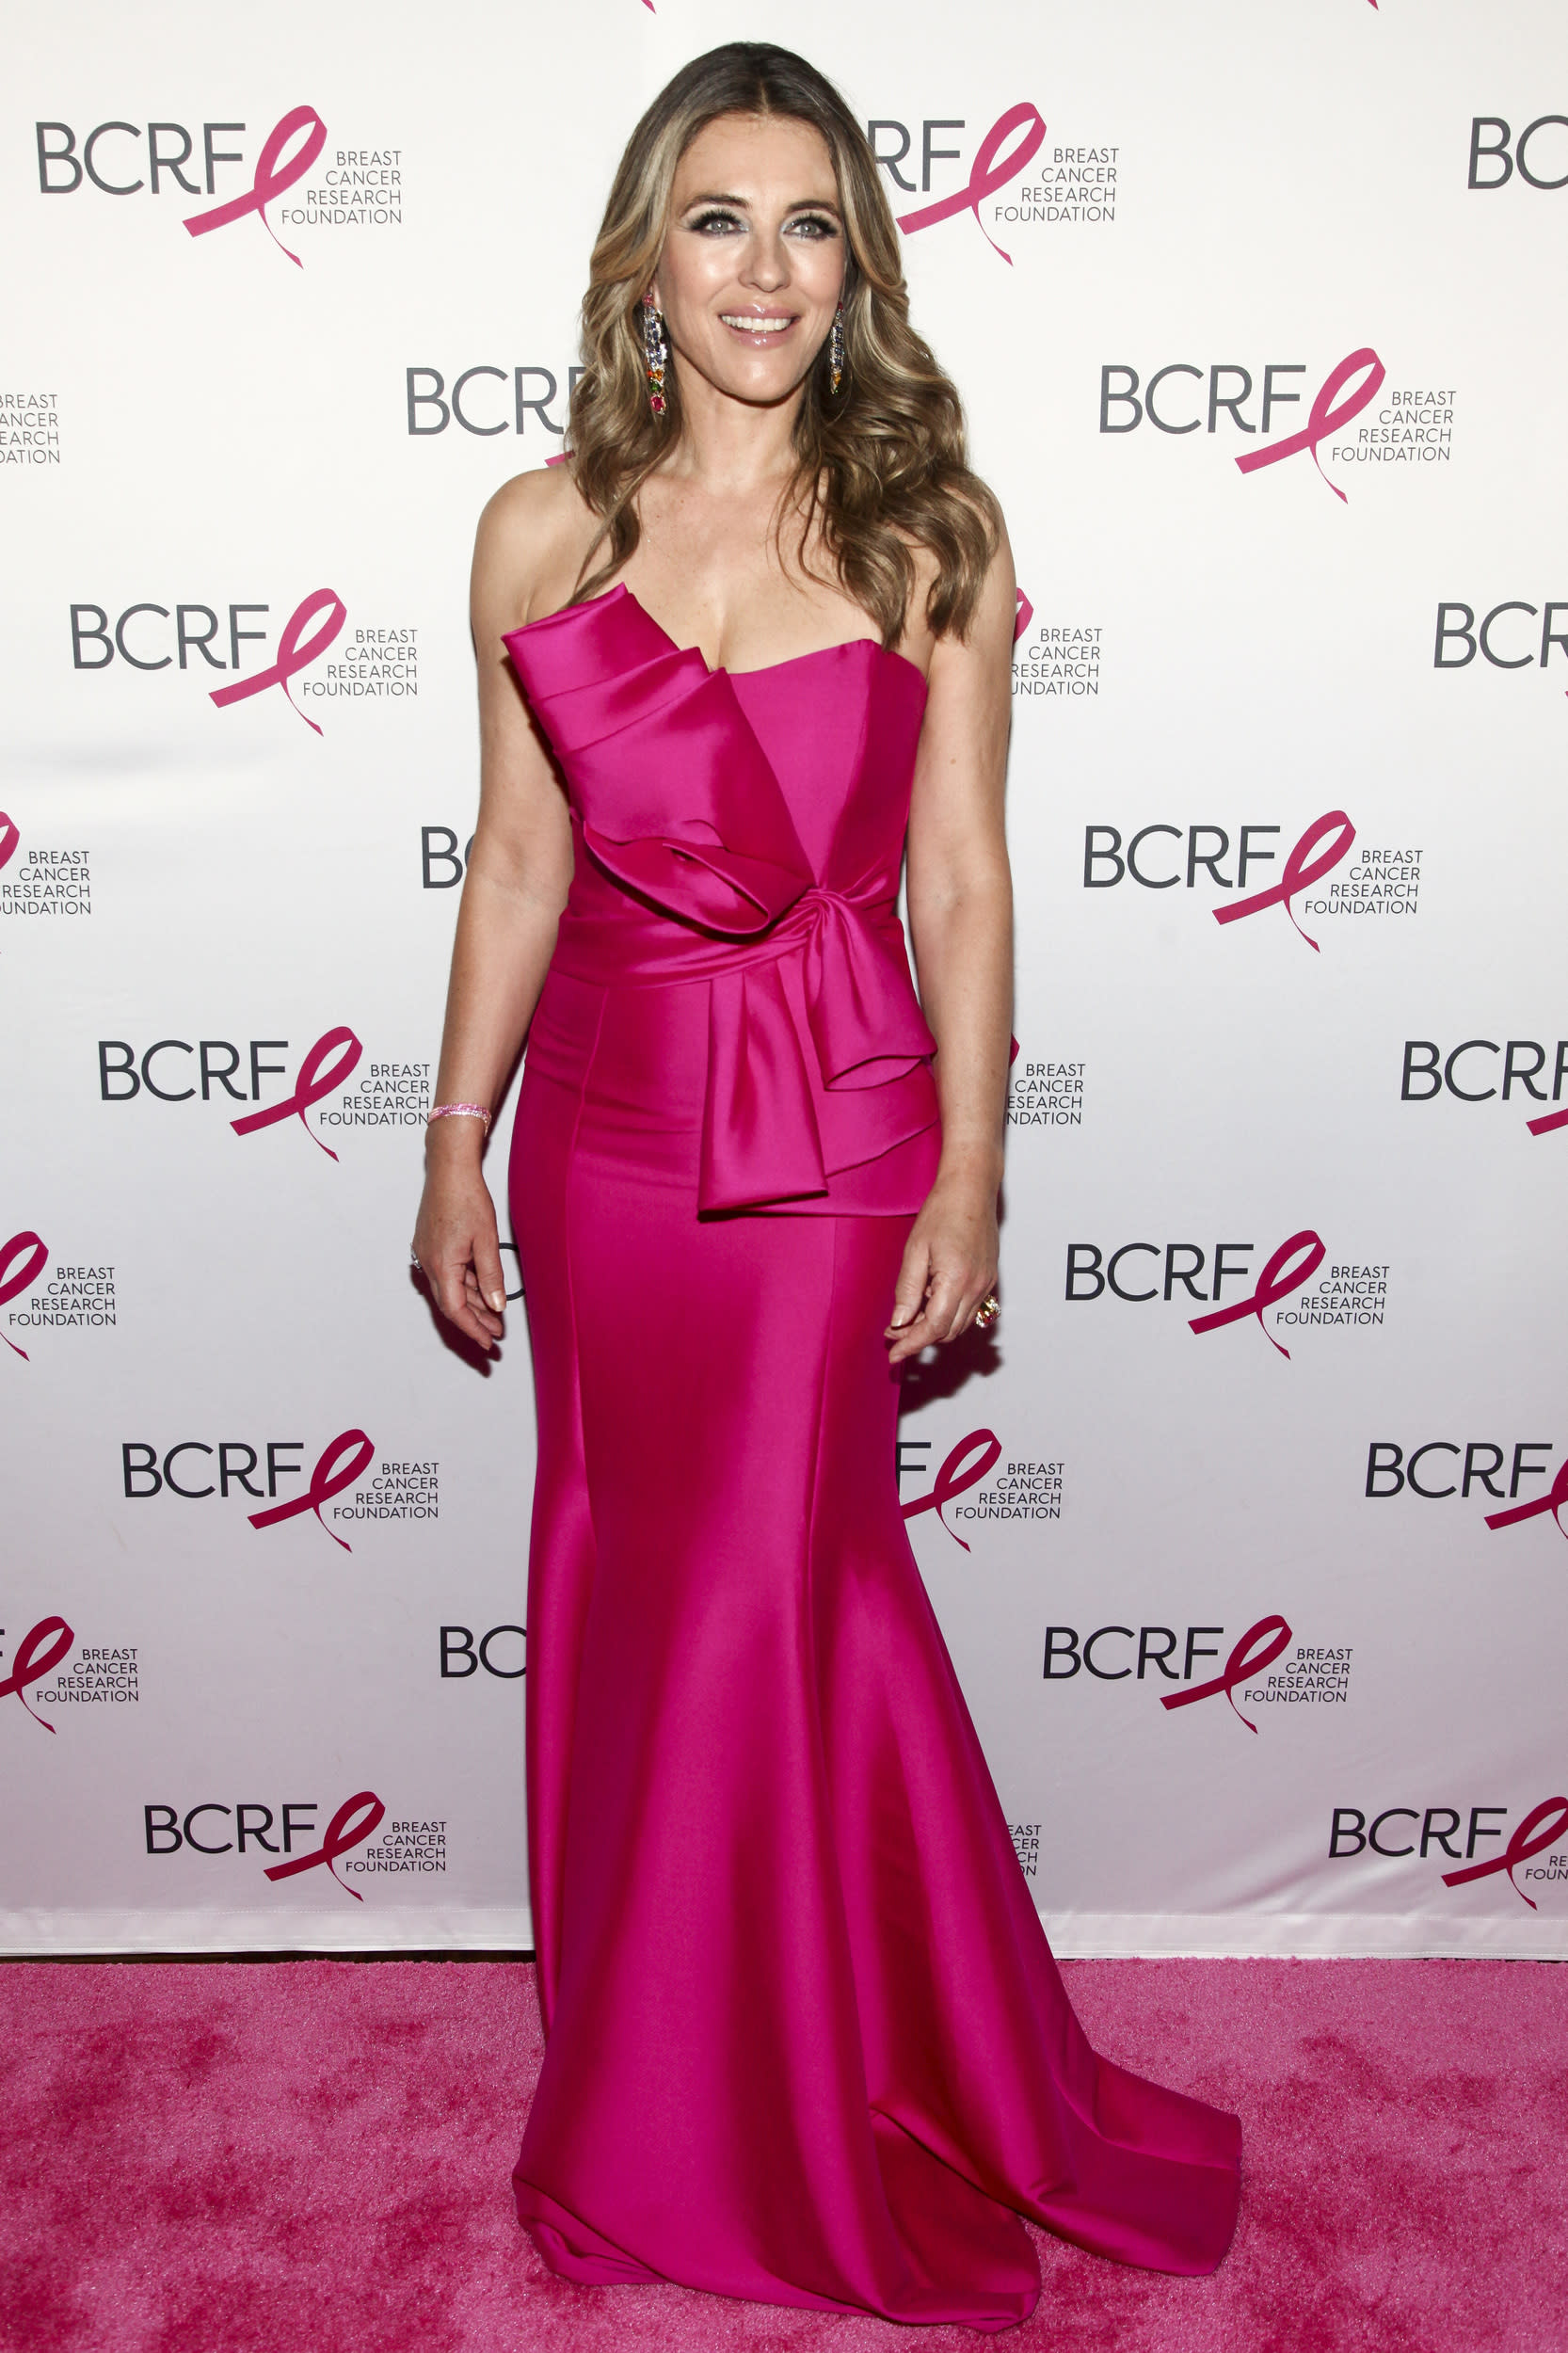 Elizabeth Hurley attends the Breast Cancer Research Foundation's The Hot Pink Party at the Park Avenue Armory on Thursday, May 17, 2018, in New York. (Photo by Andy Kropa/Invision/AP)